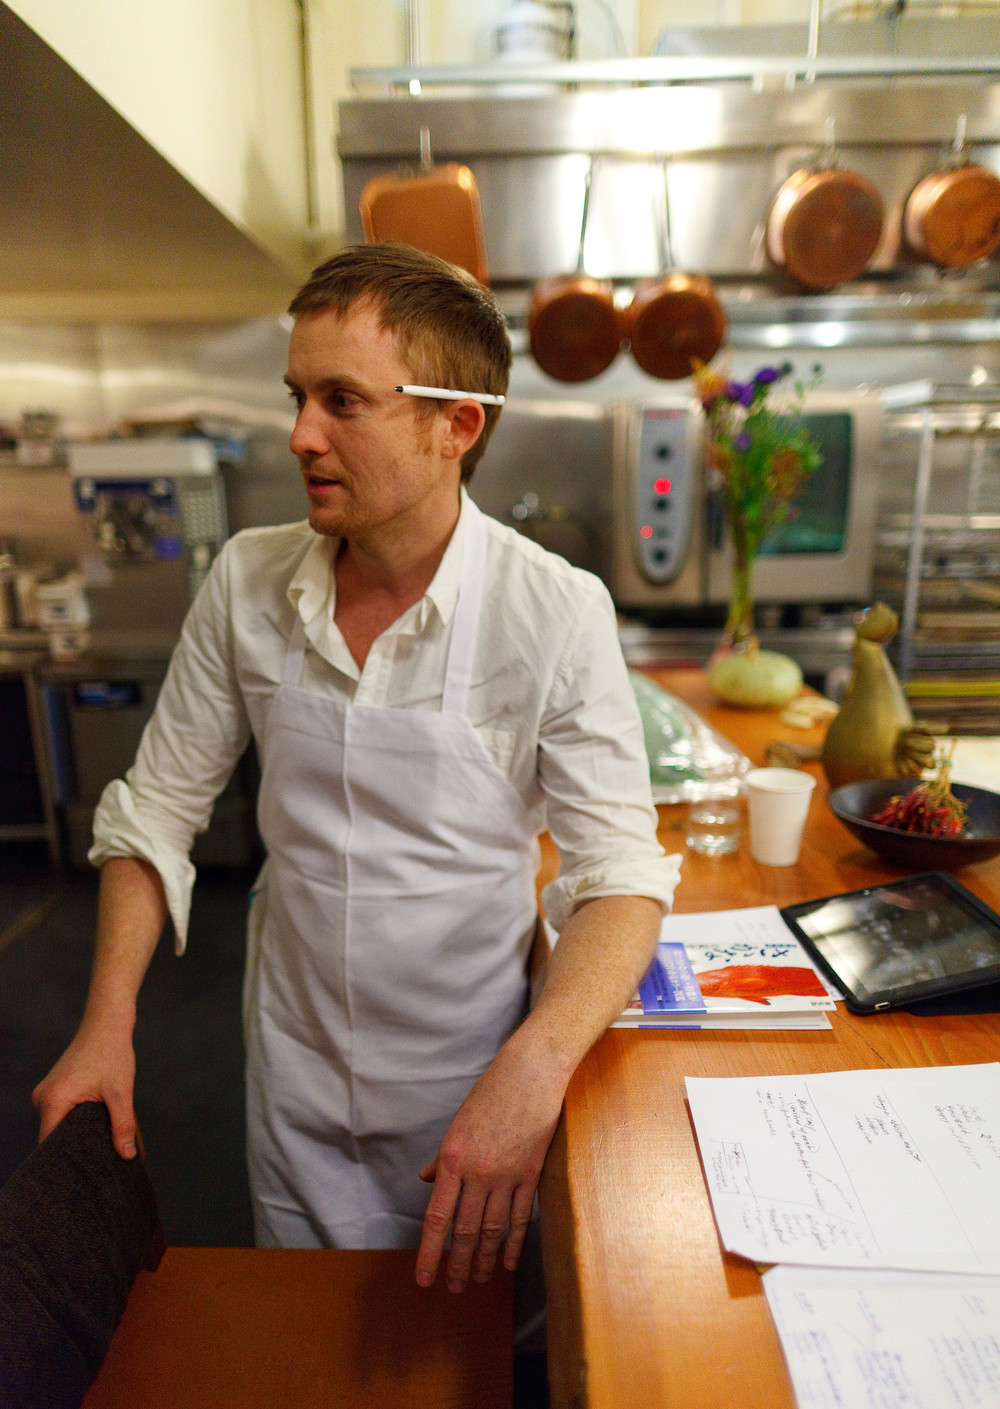 Saison-San-Francisco-Portrait-of-Chef-Joshua-Skenes-with-Sakana-fish-ID-book.jpeg